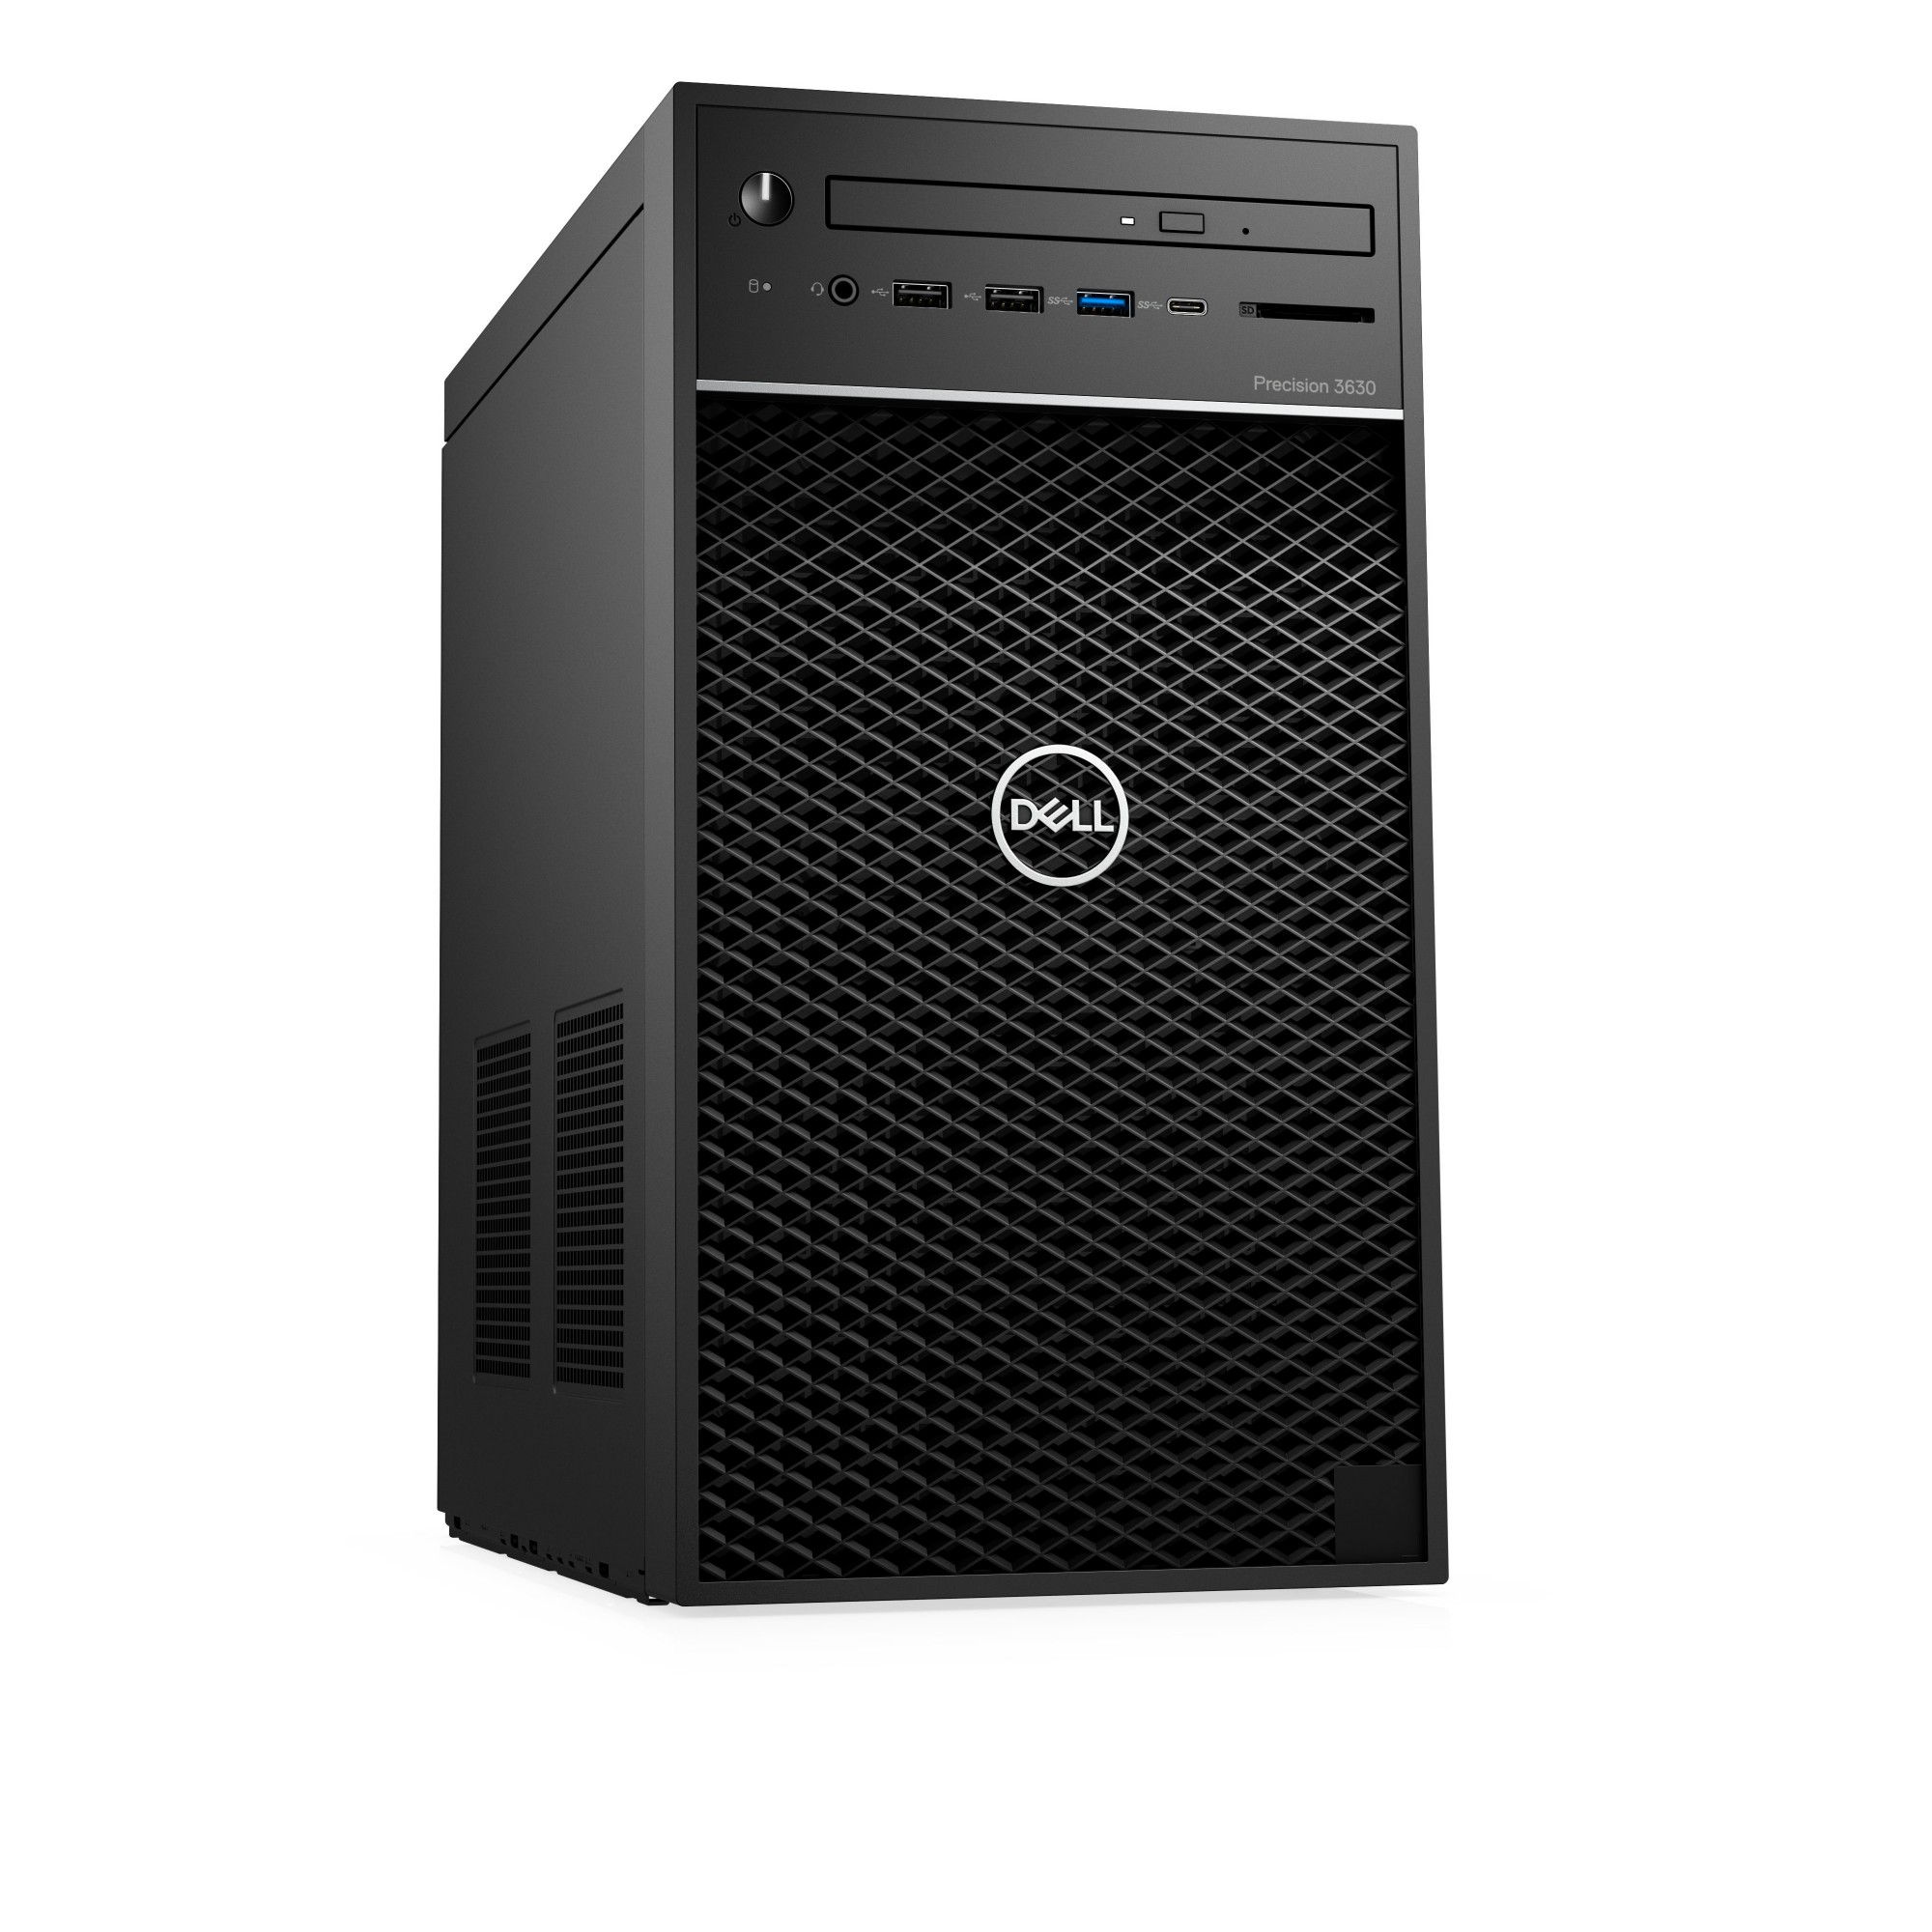 Dell Preci 3630 i7 16GB 256GB SSD 1TB PC